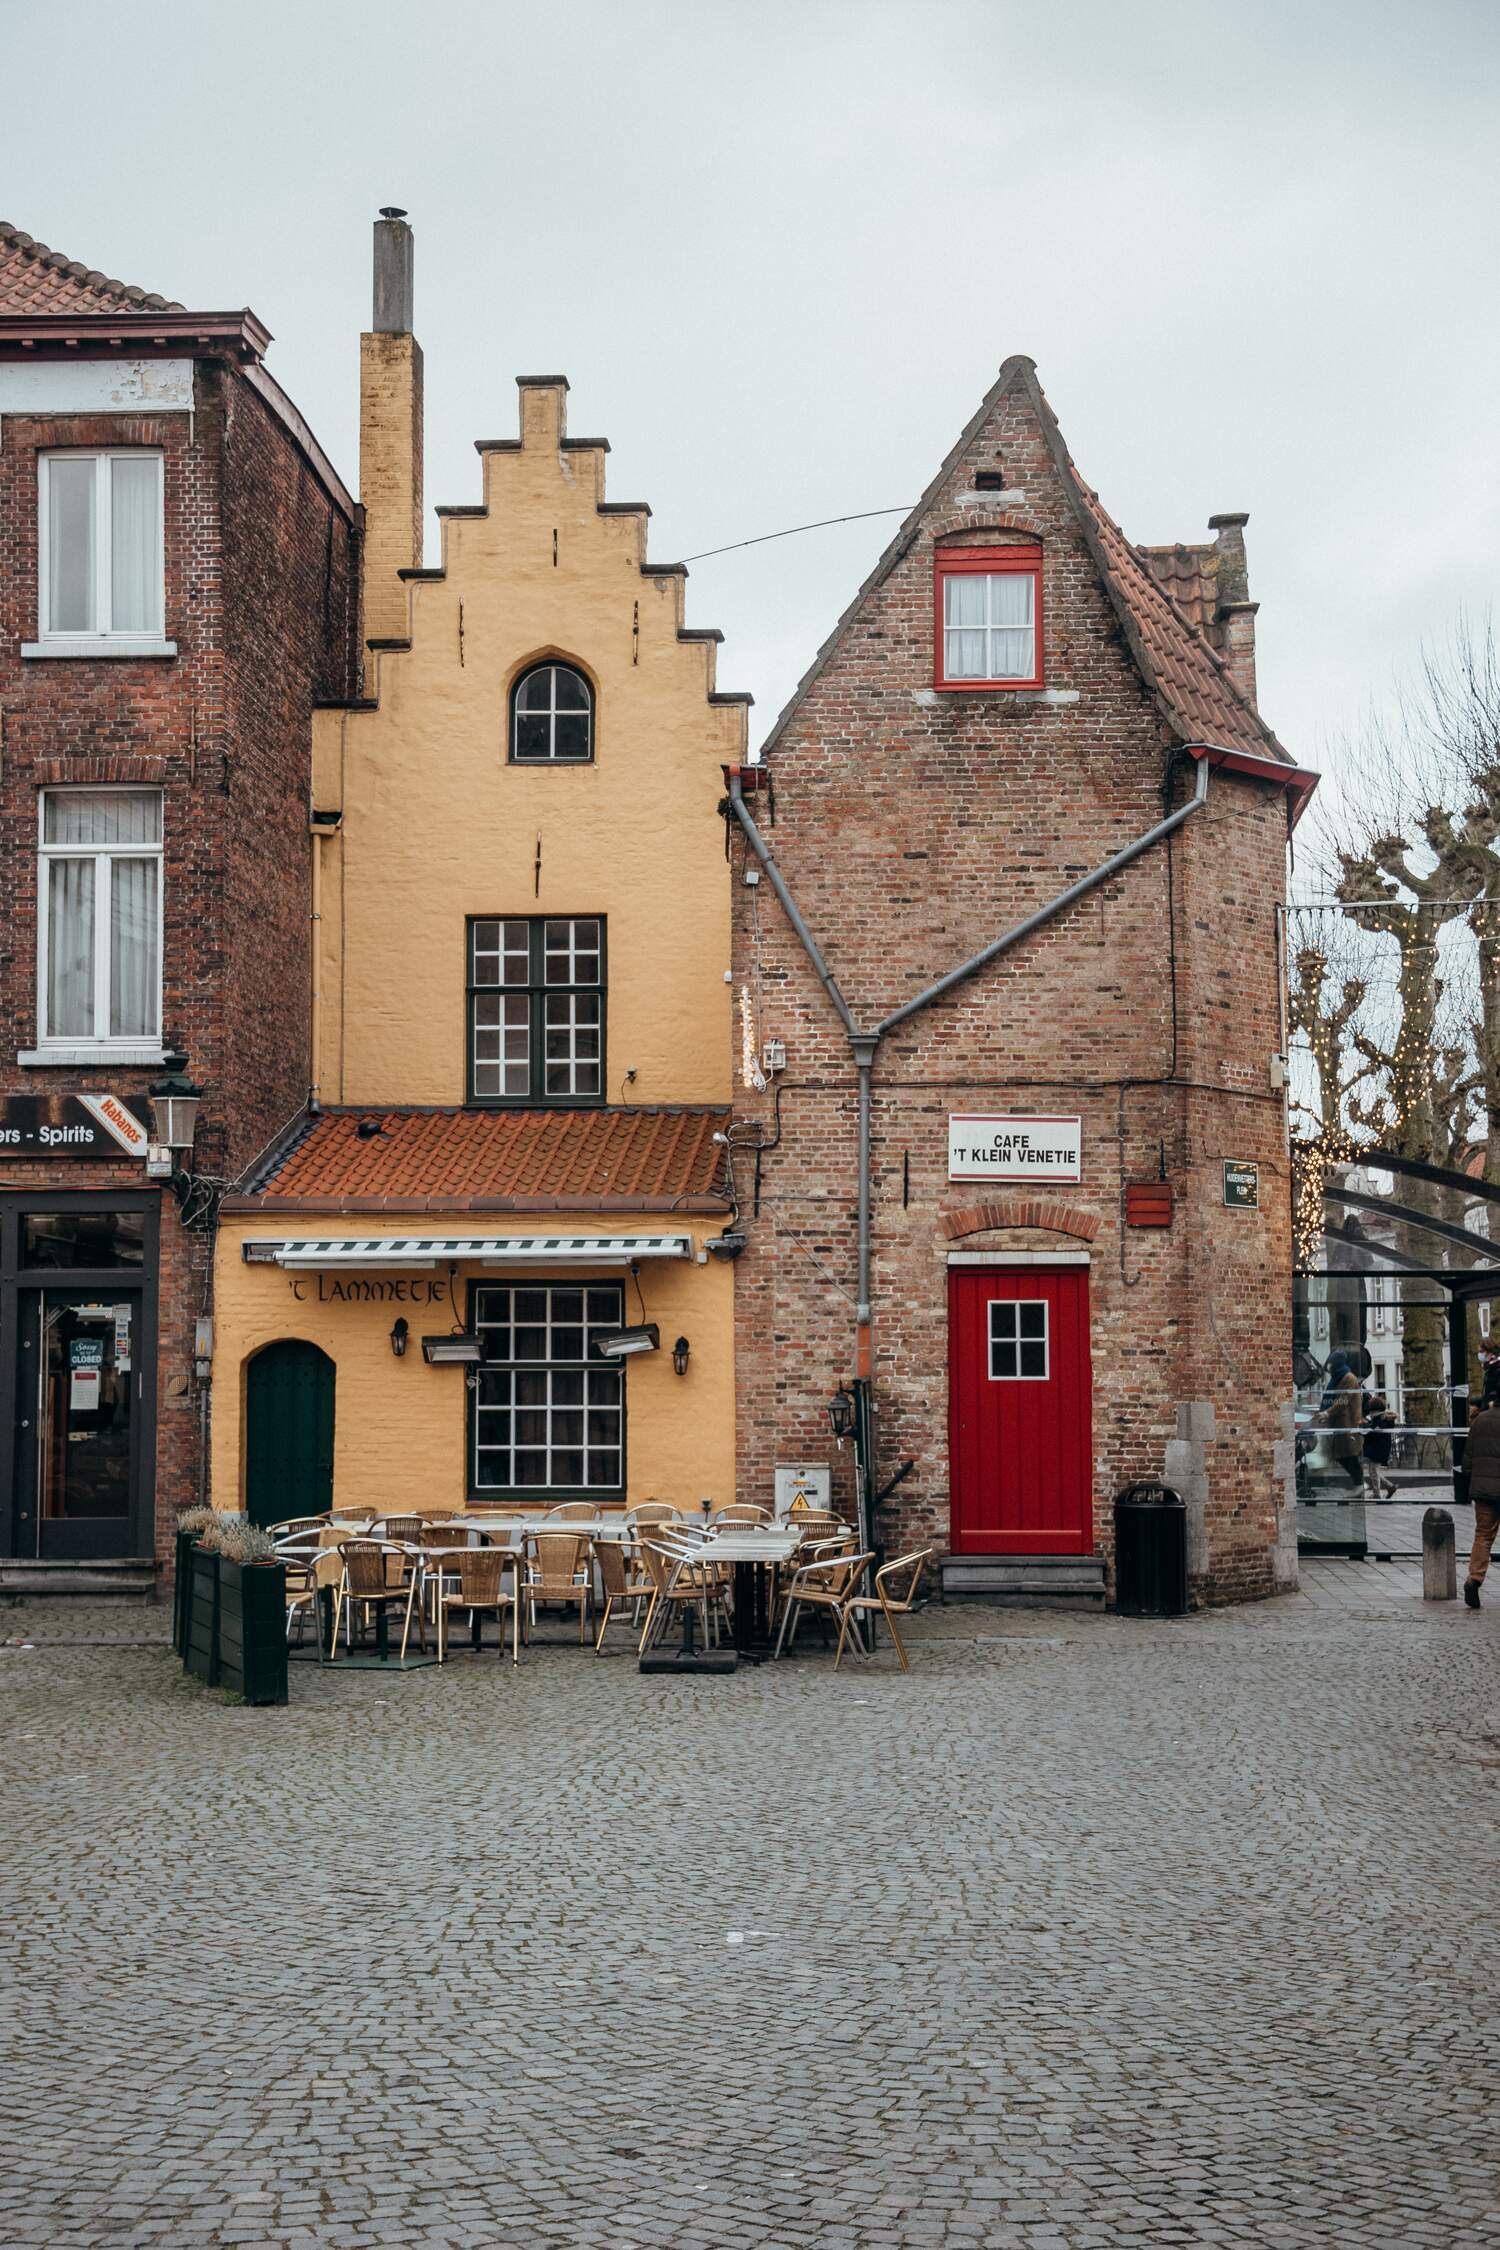 The lovely architecture in Bruges shown by the Huidenvettersplein